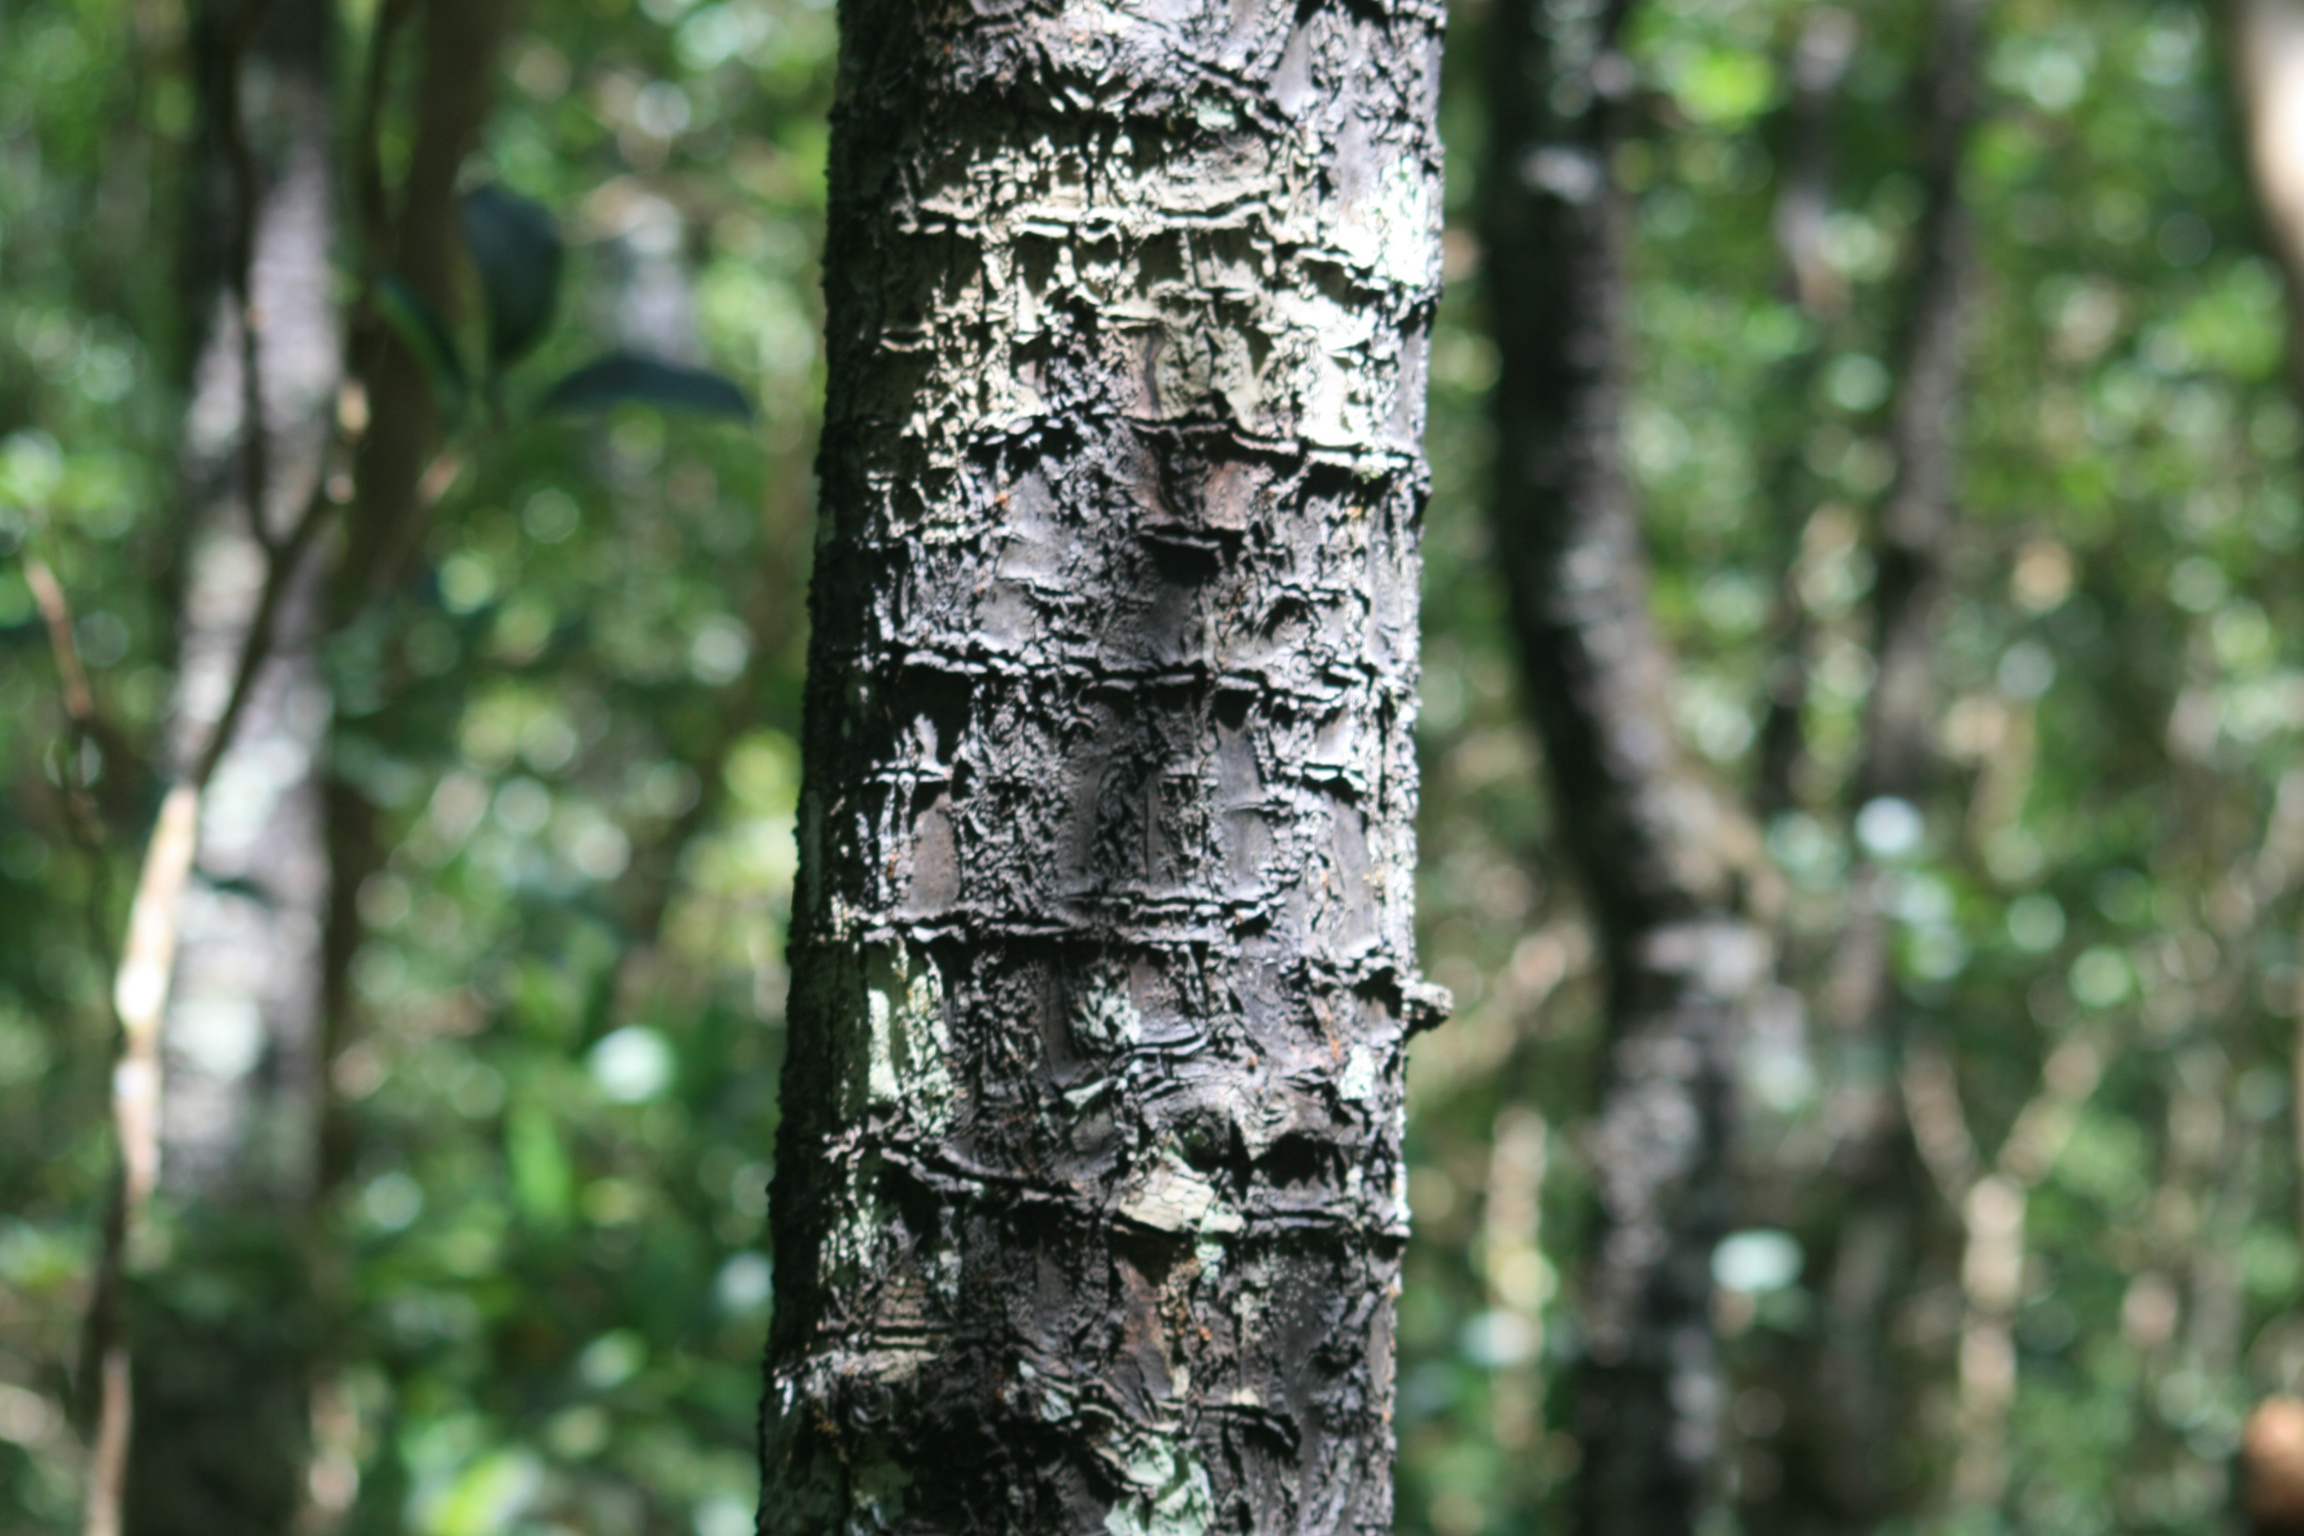 Slender tree with rick markings on bark is foregrounded and other trees out of focus in background